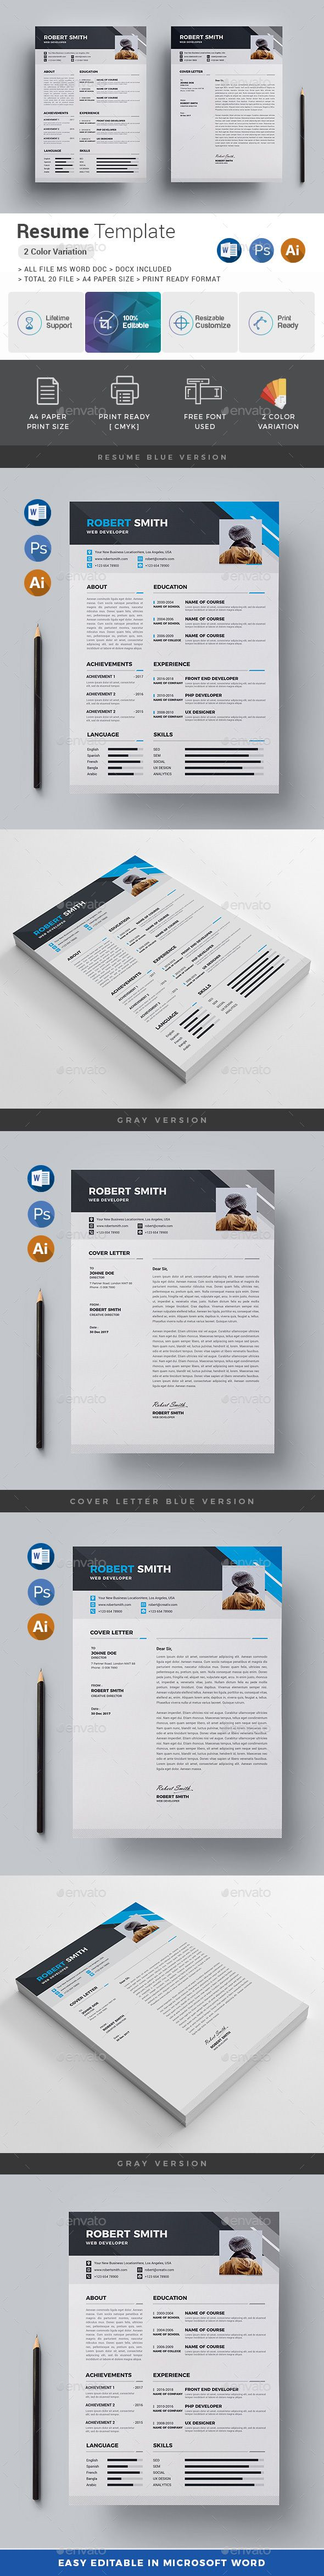 Features of Resume Template Color VersionsA4 Paper Size